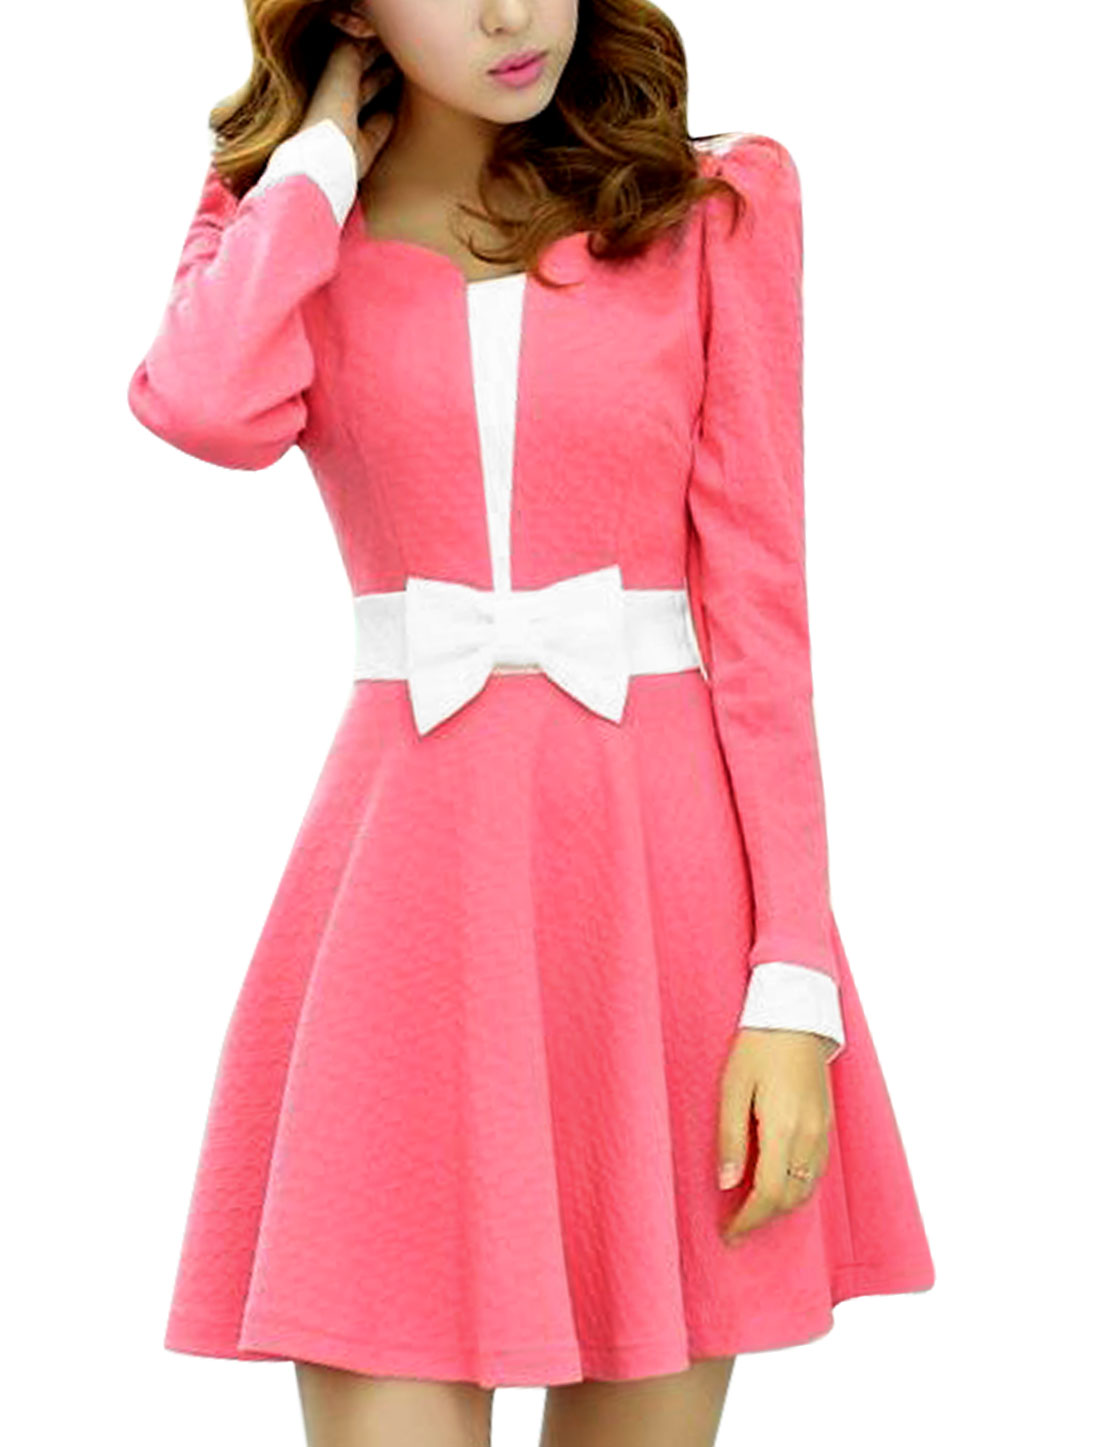 Women Scallop Neck Long Sleeve Color Blocking A-Line Dress Watermelon Red S